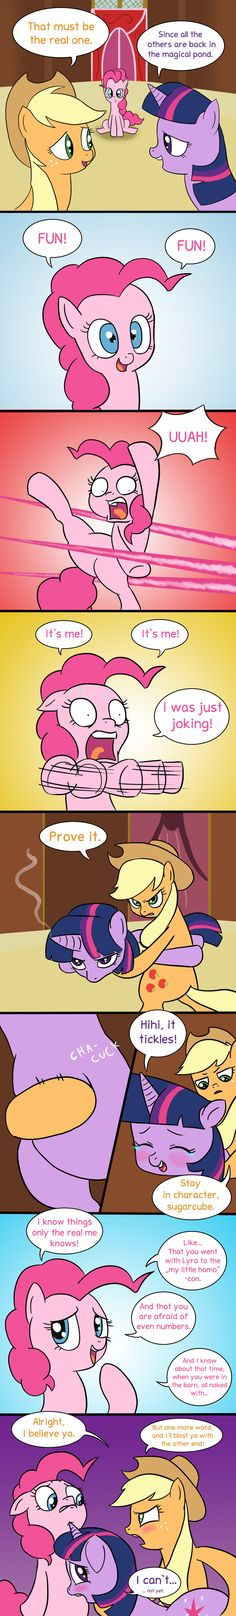 Wrong time for a joke by doubleWbrothers.deviantart.com on @deviantART